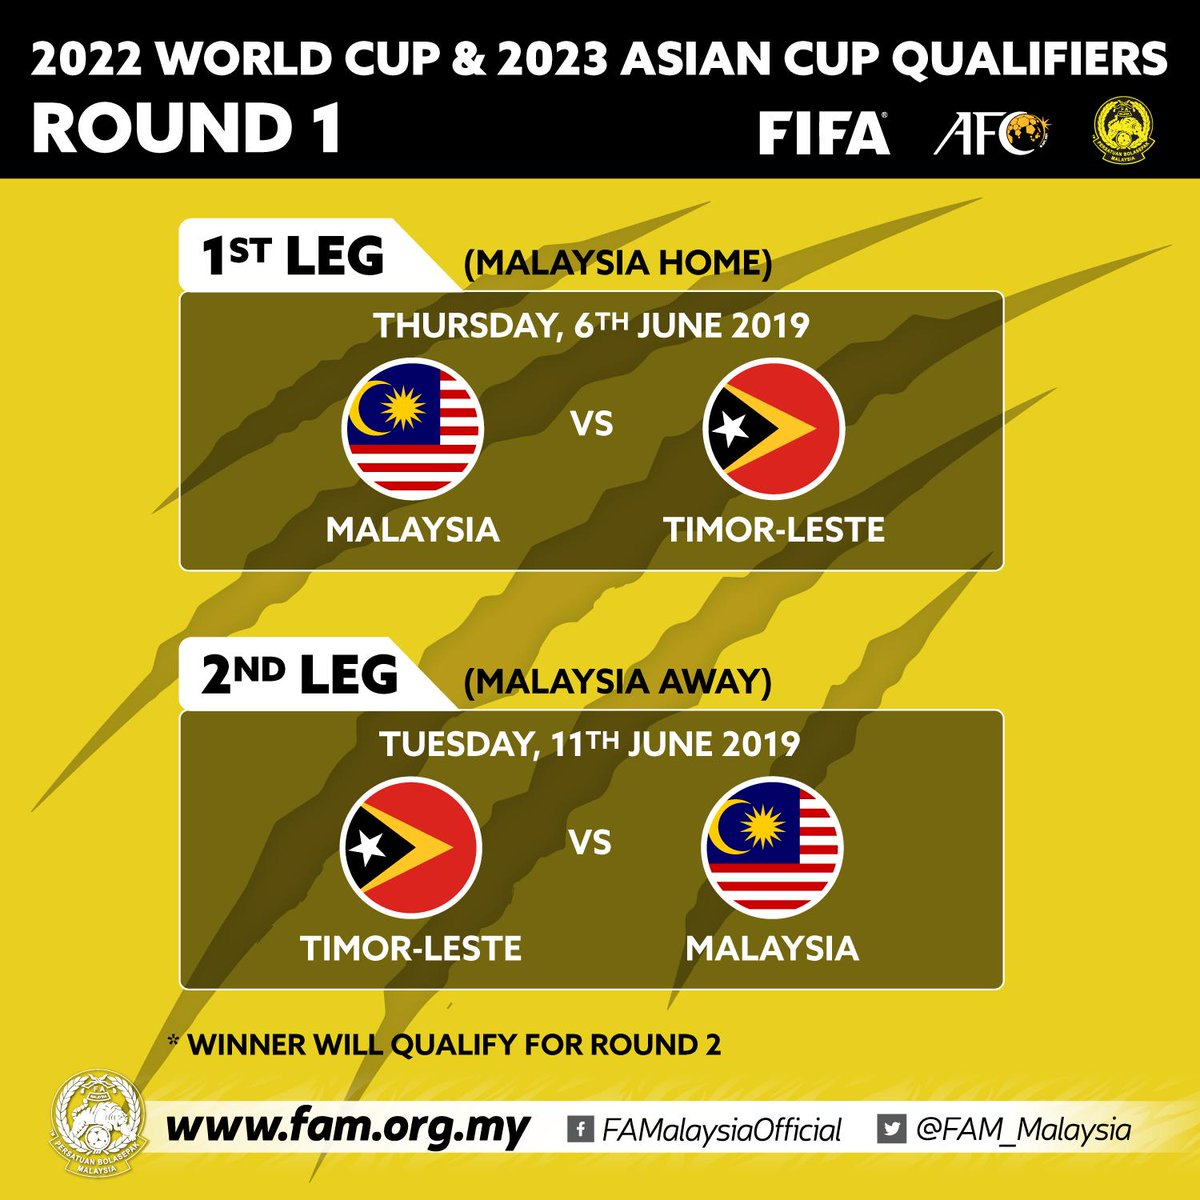 2022 World Cup & 2023 Asian Cup Qualifiers  Round 1  1st Leg - Thursday, 6th June 2019 MALAYSIA vs TIMOR-LESTE Venue: TBC  2nd Leg - Tuesday, 11th June 2019 TIMOR-LESTE vs MALAYSIA Venue: TBC  * Winner will qualify for Round 2  #FAM #HarimauMalaya